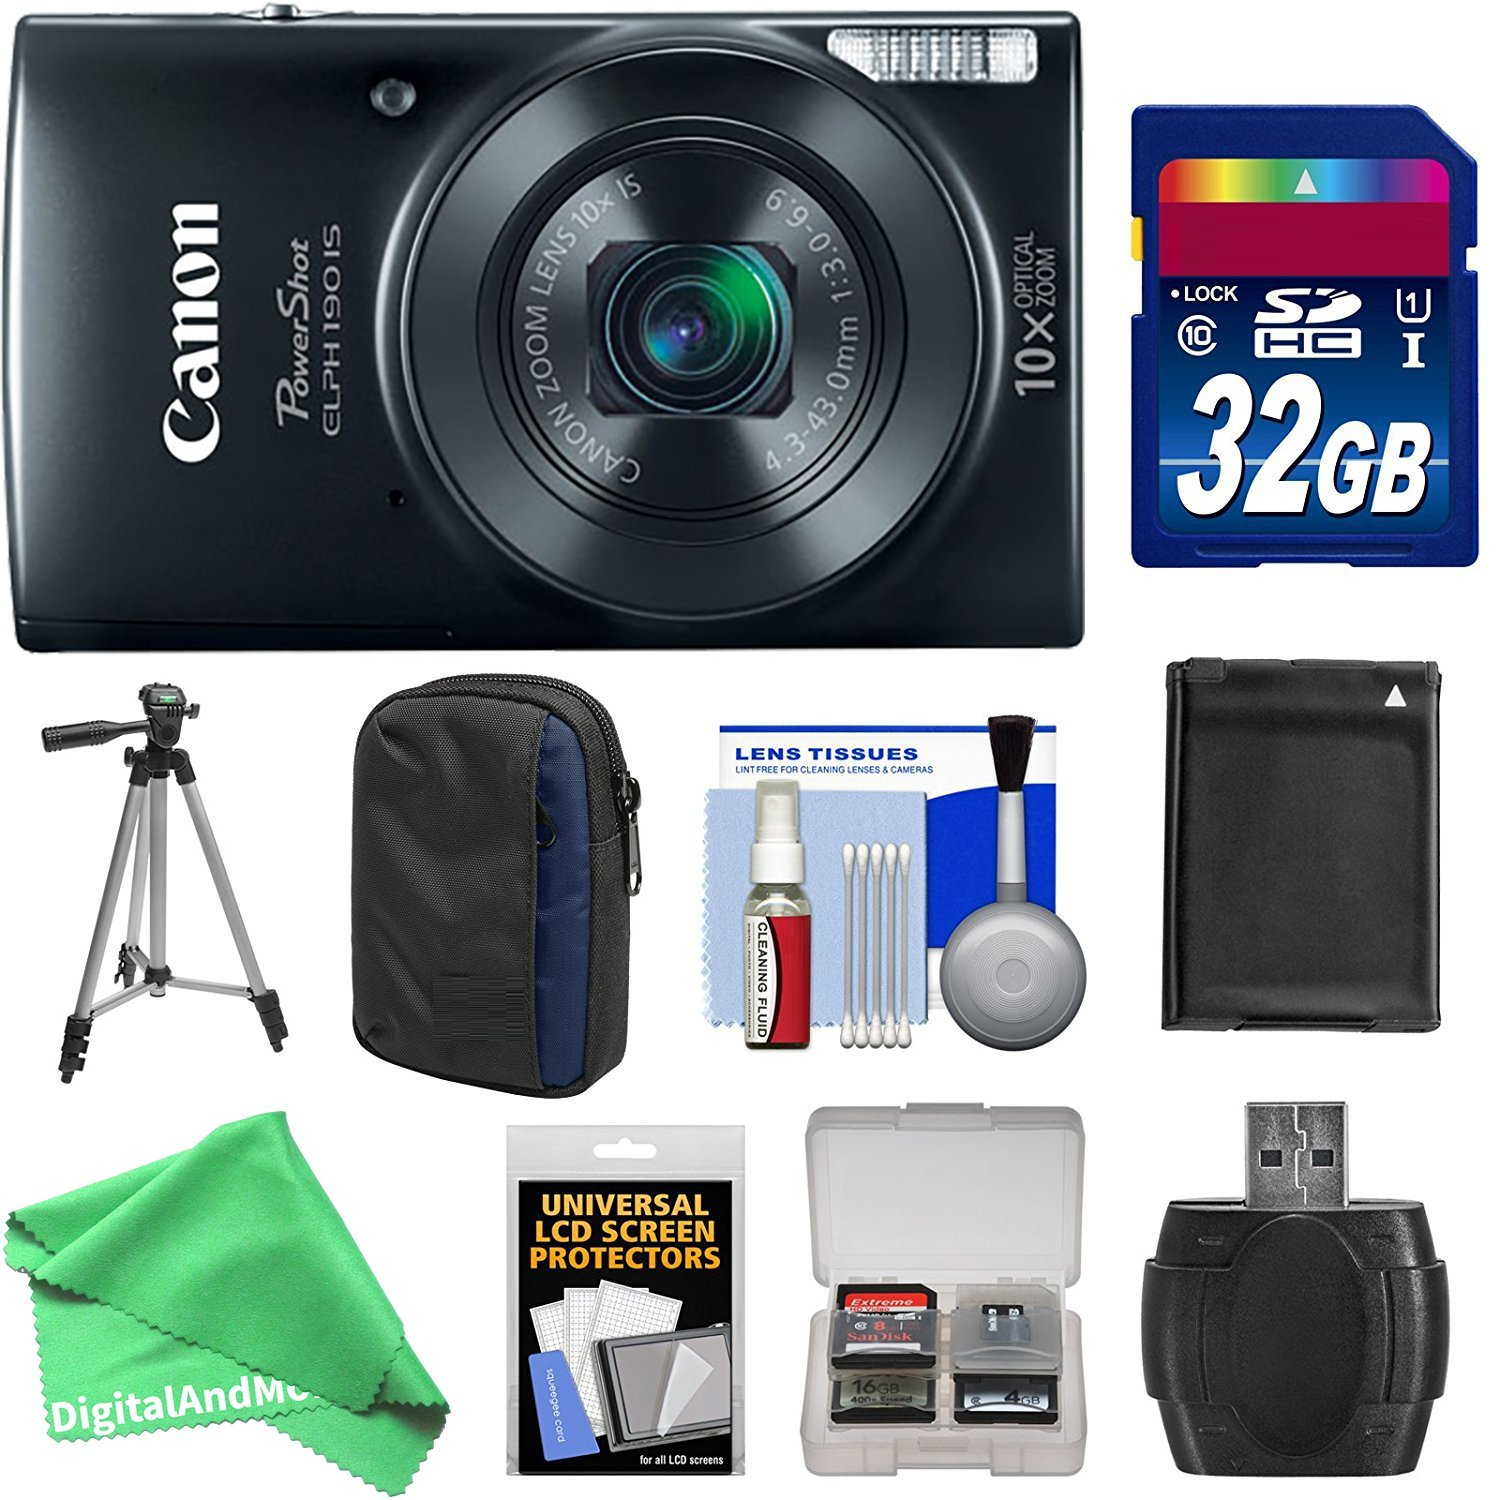 Canon PowerShot Elph 190 IS Wi-Fi Digital Camera (Blue) with 32GB Card + Case + Battery + Tripod + ESSENTIAL DigitalAndMore Kit